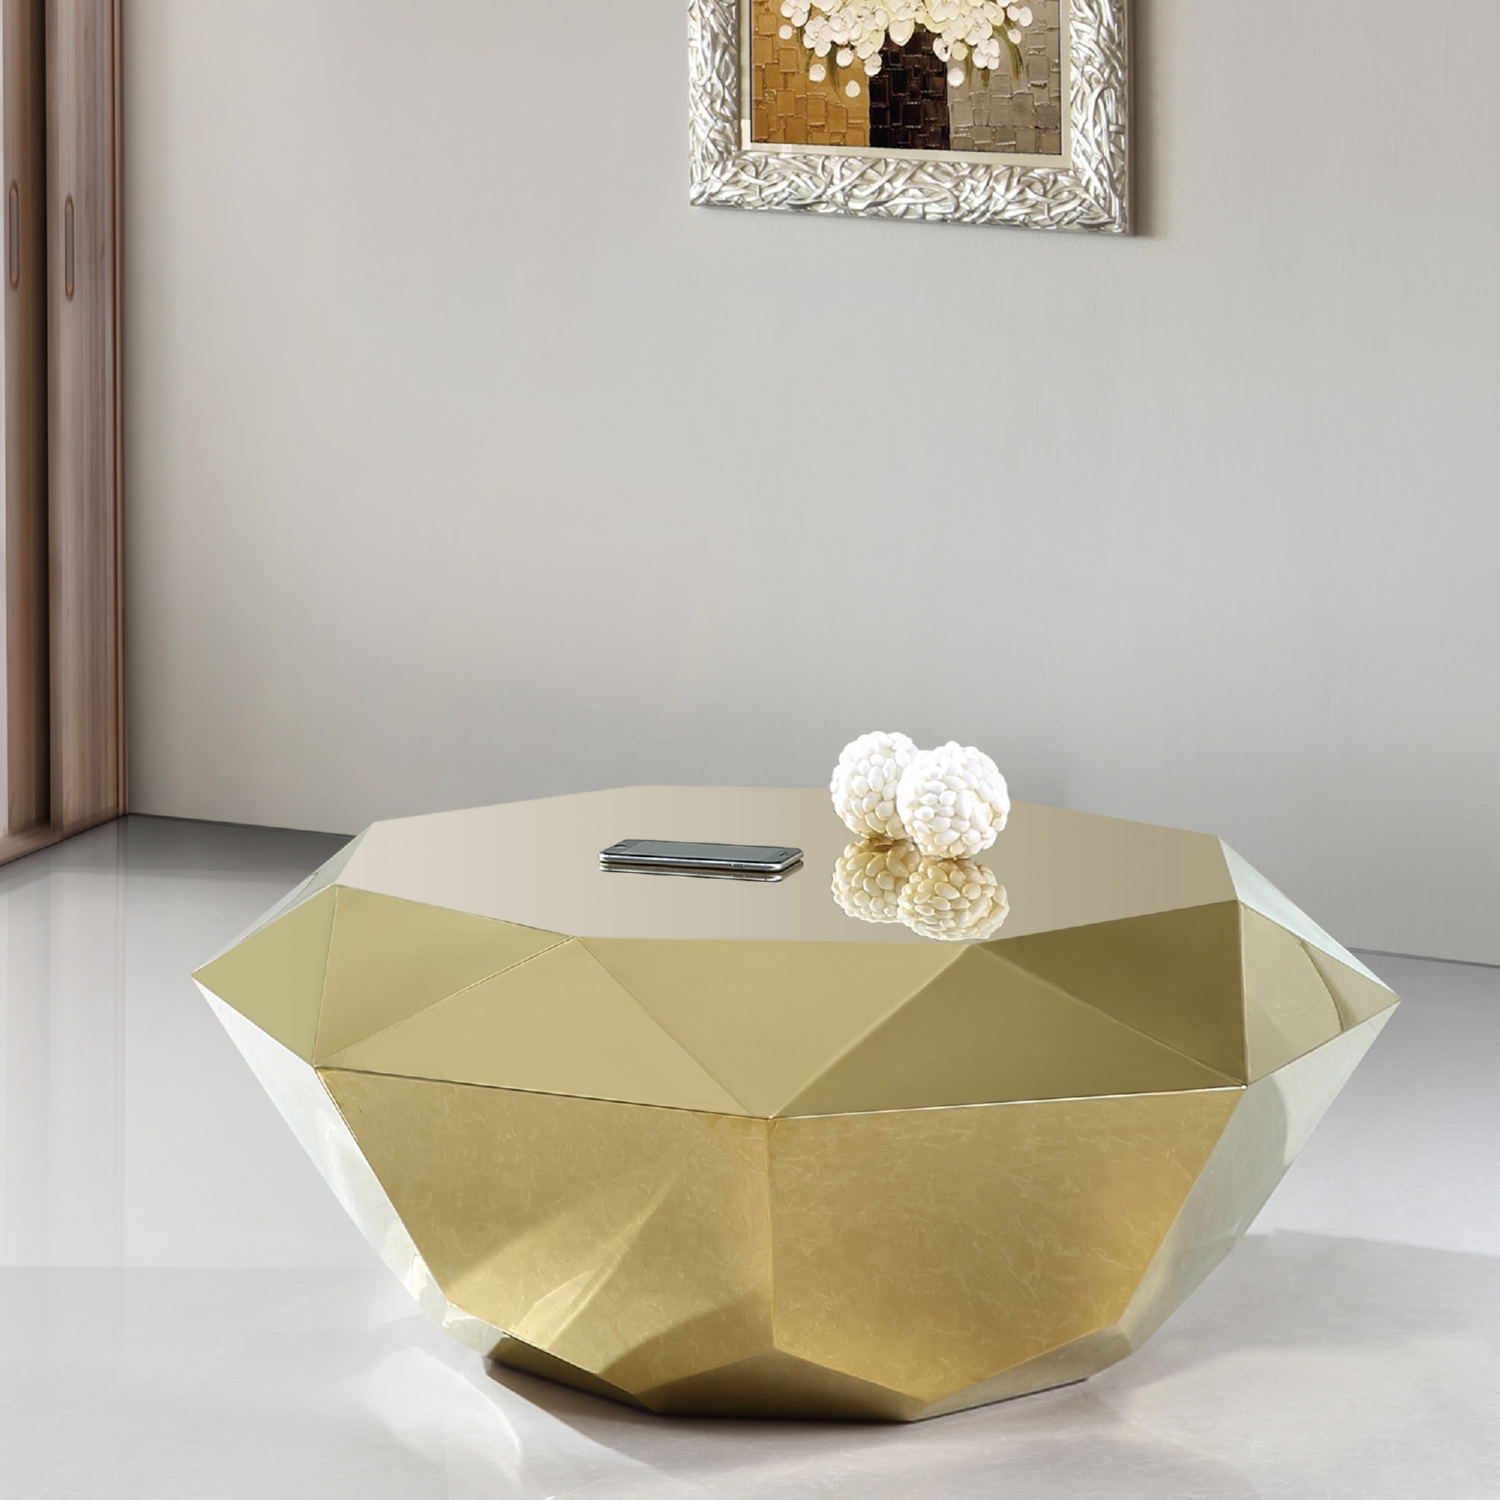 Meridian Furniture 222Gold C Gemma Gold Diamond Shape Coffee Table